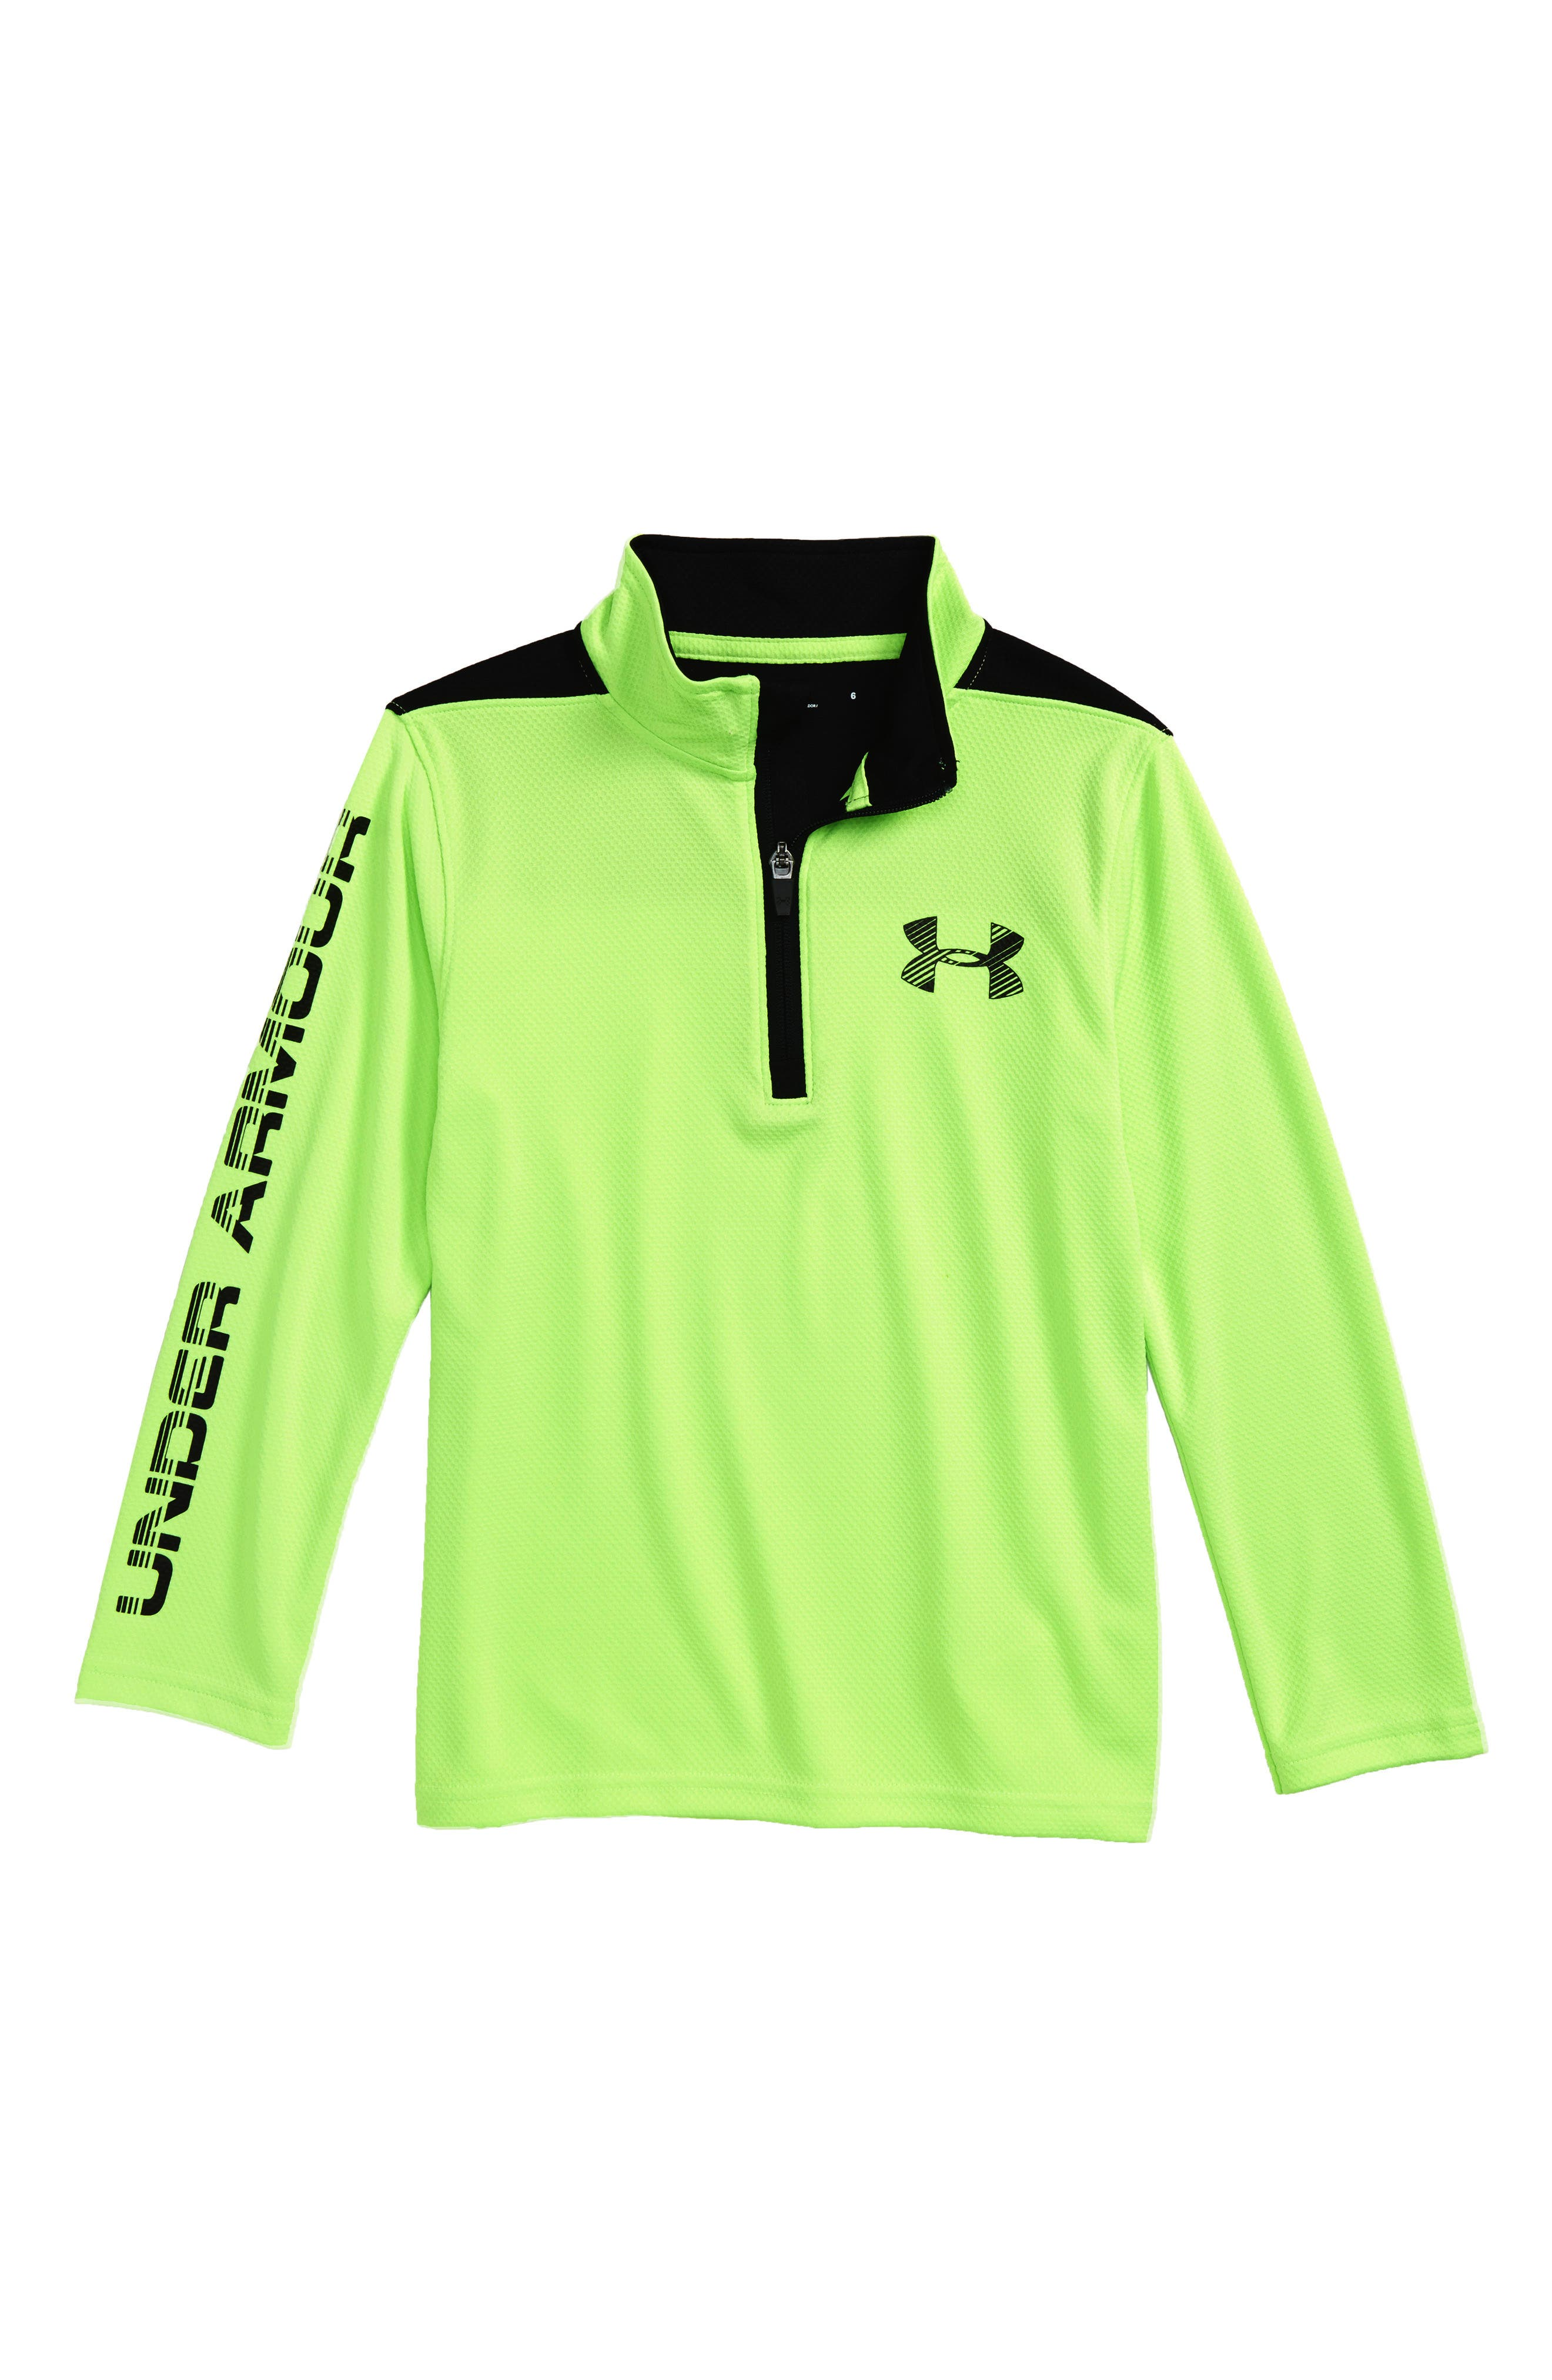 Main Image - Under Armour Longevity Quarter Zip Top (Toddler Boys & Little Boys)